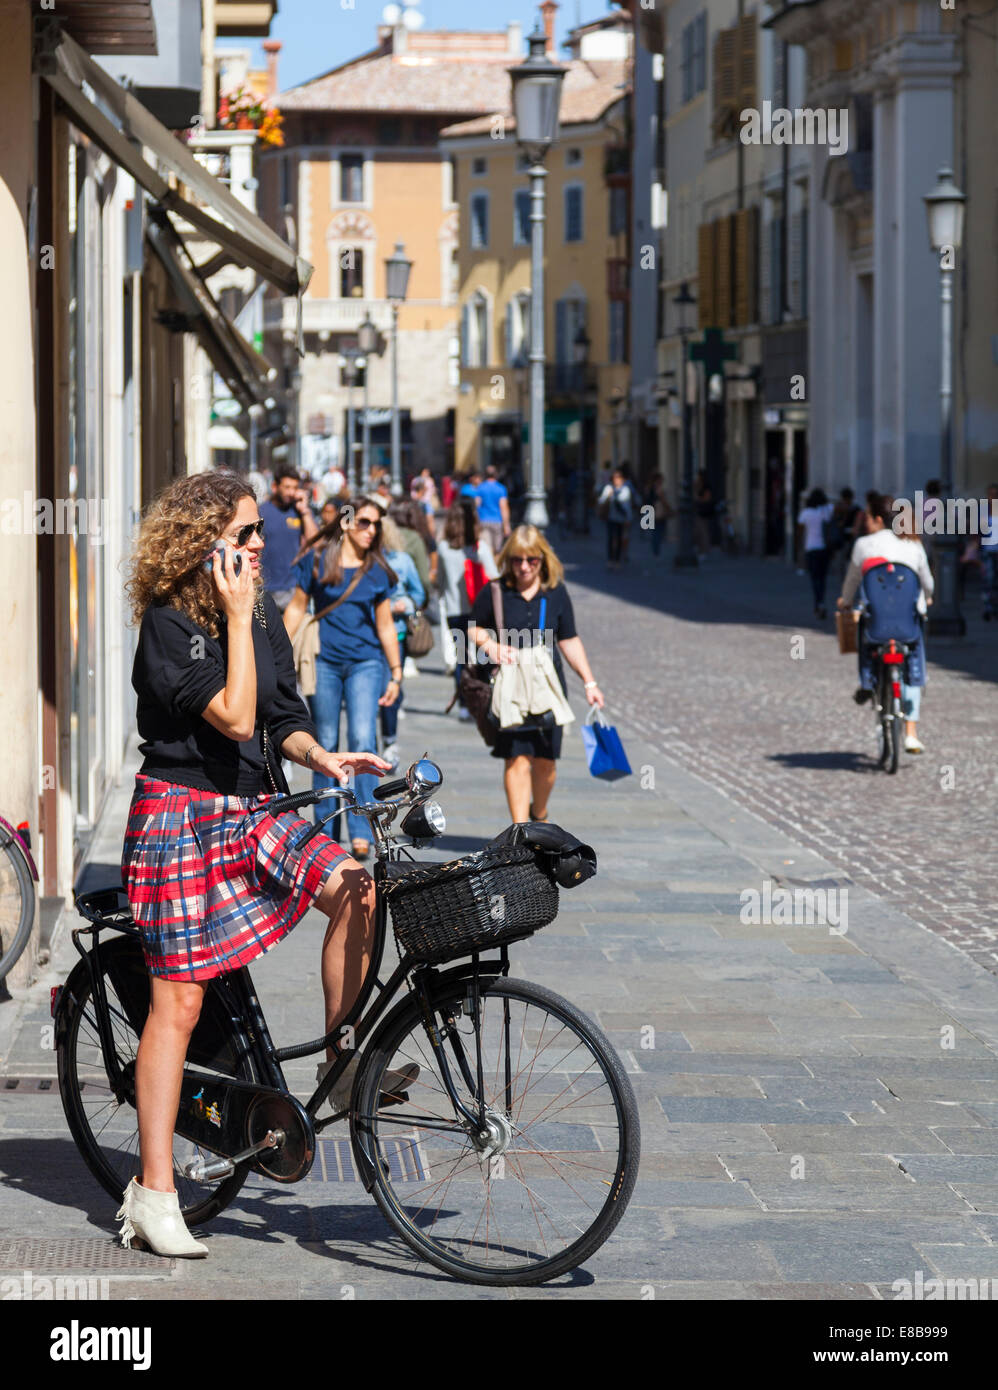 Young woman in a skirt talking on mobile phone while on a bicycle, Parma, Emilia-Romagna, Italy - Stock Image